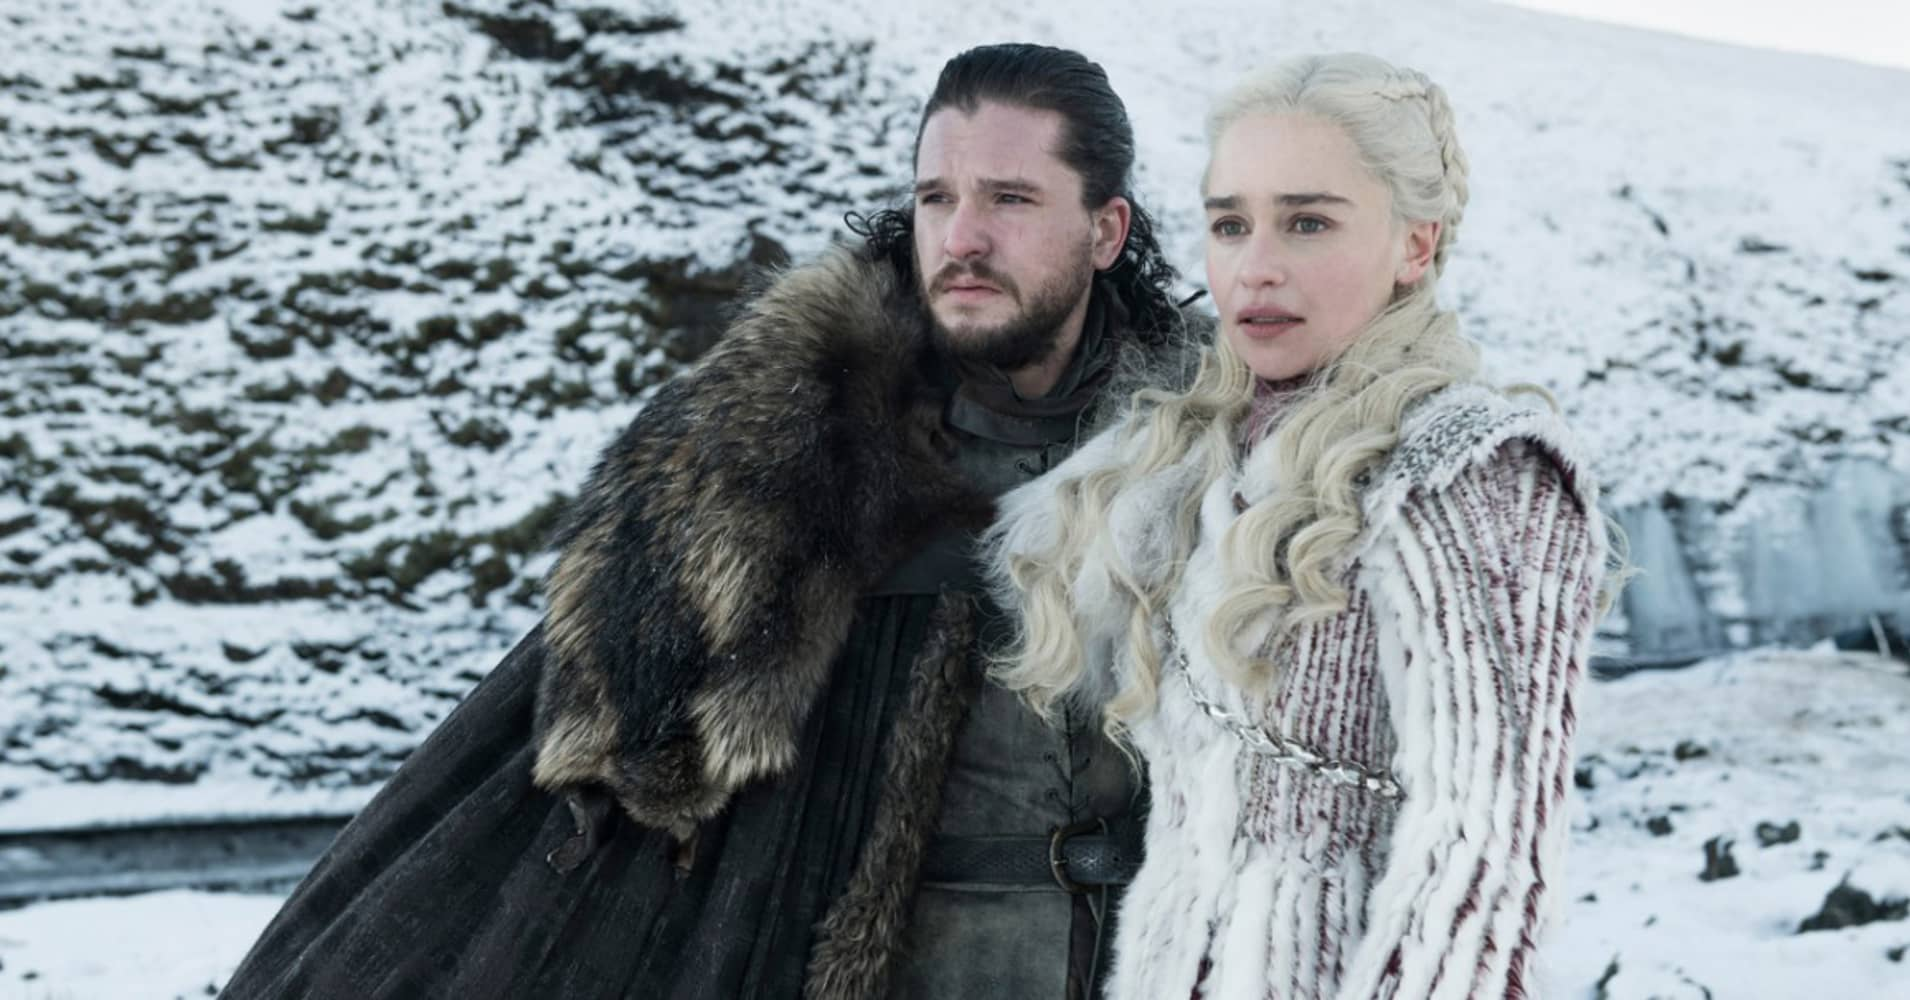 'Game of Thrones' hits record viewership in season 8 premiere